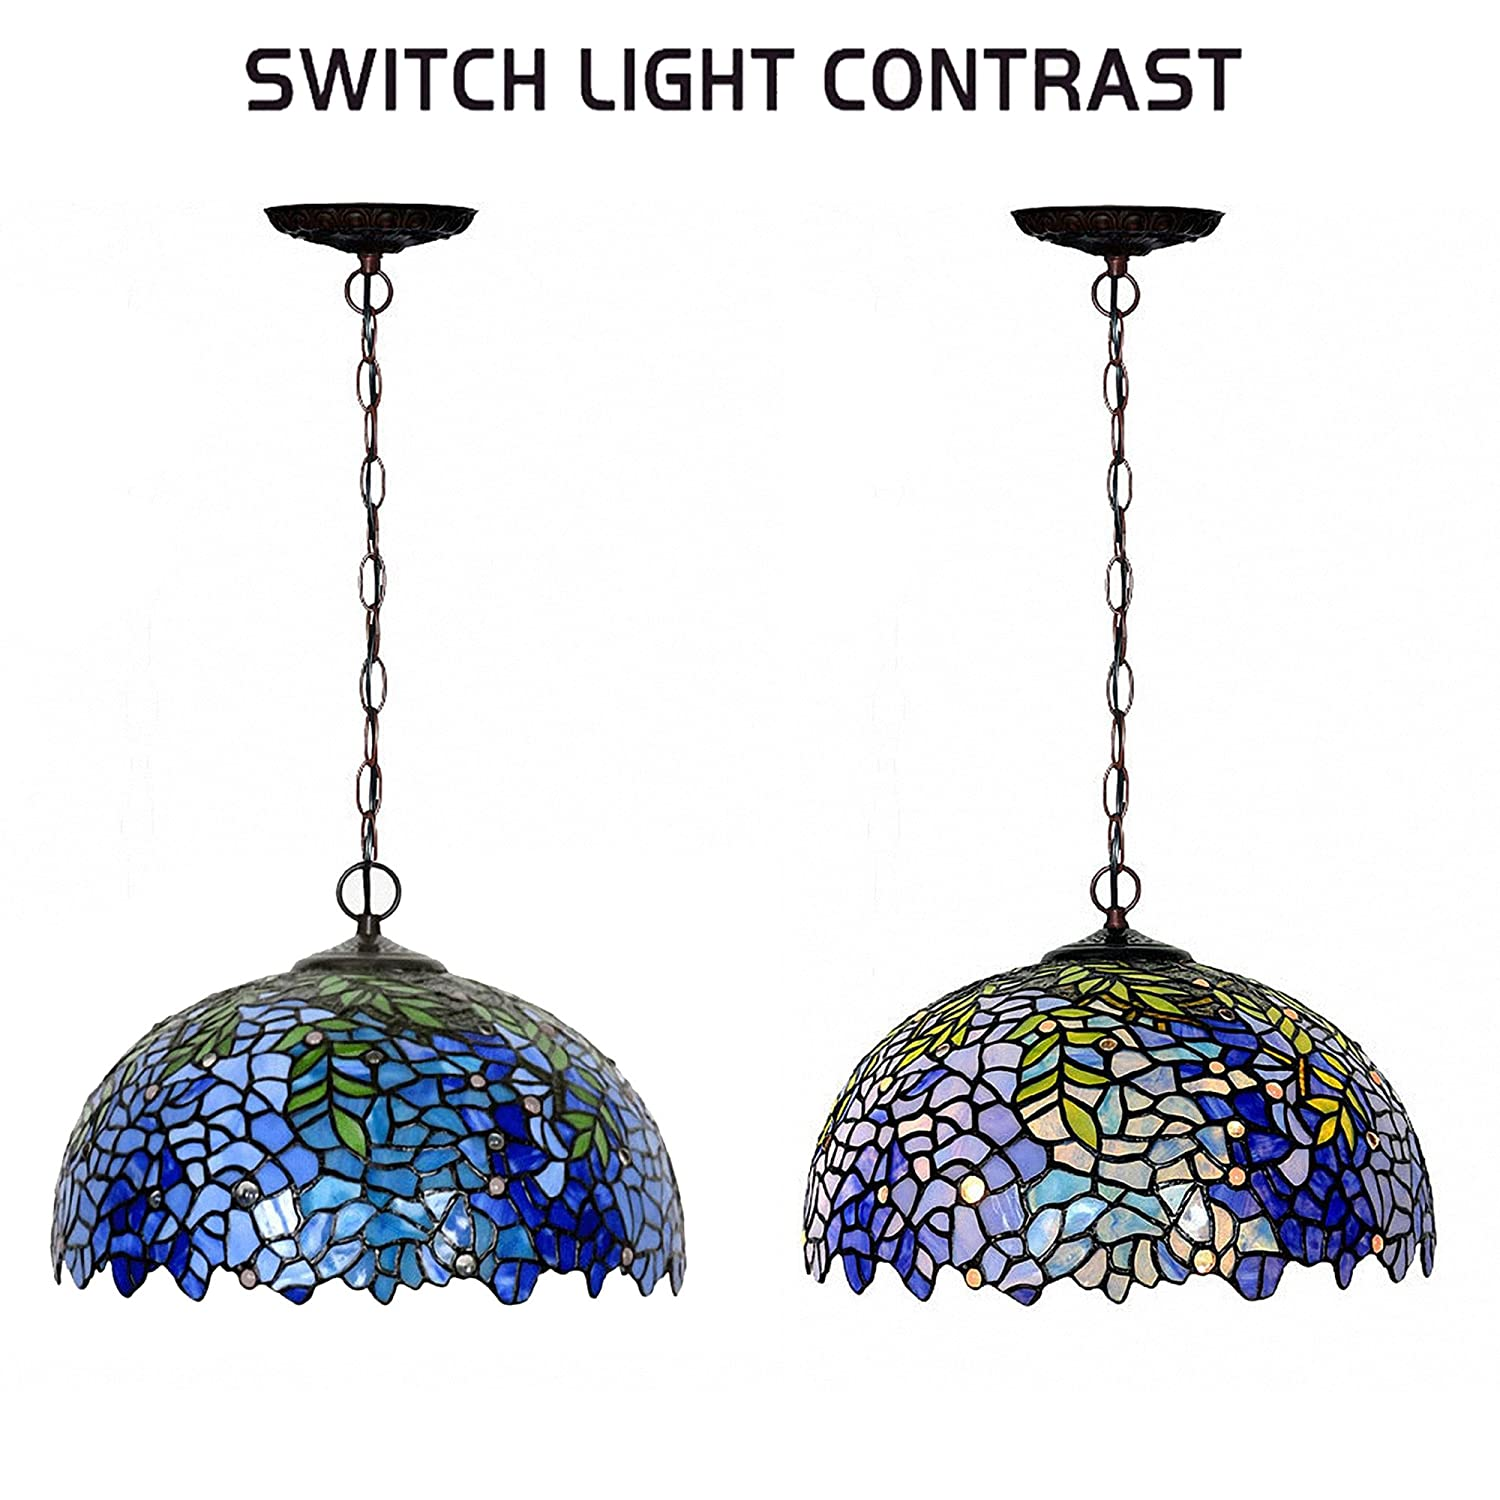 Chandeliers,Magcolor Tiffany Style Stained Glass Purple Wisteria Hanging Lamp with Handmade Lampshade, Suitable for Decorating Room 16in